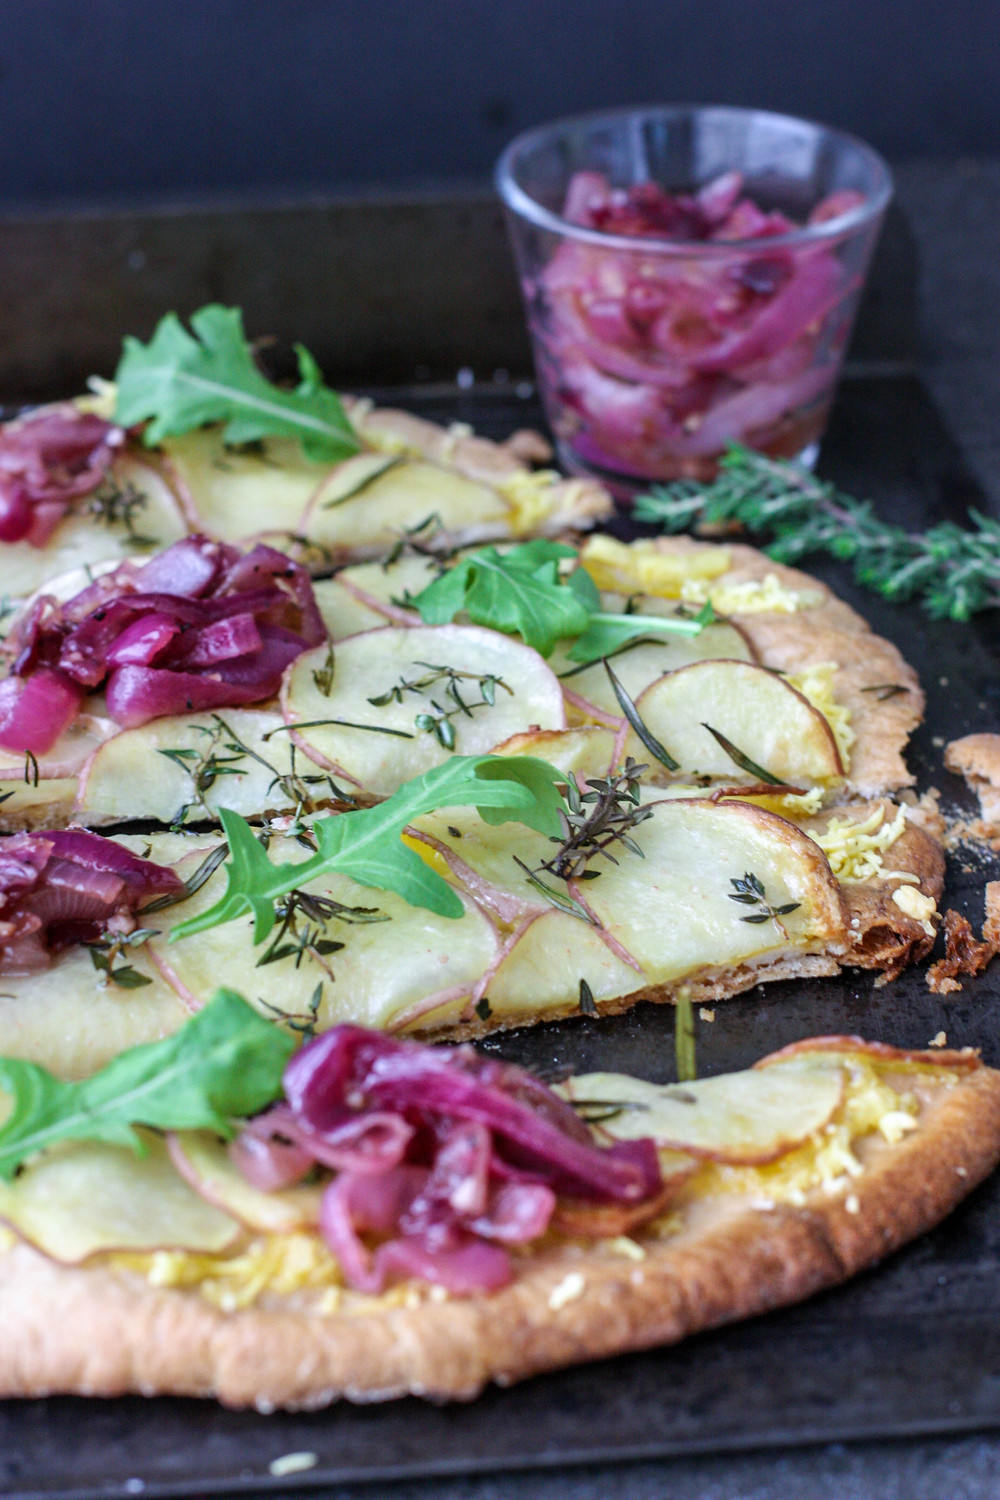 Vegan Salt and Vinegar Potato Pizza